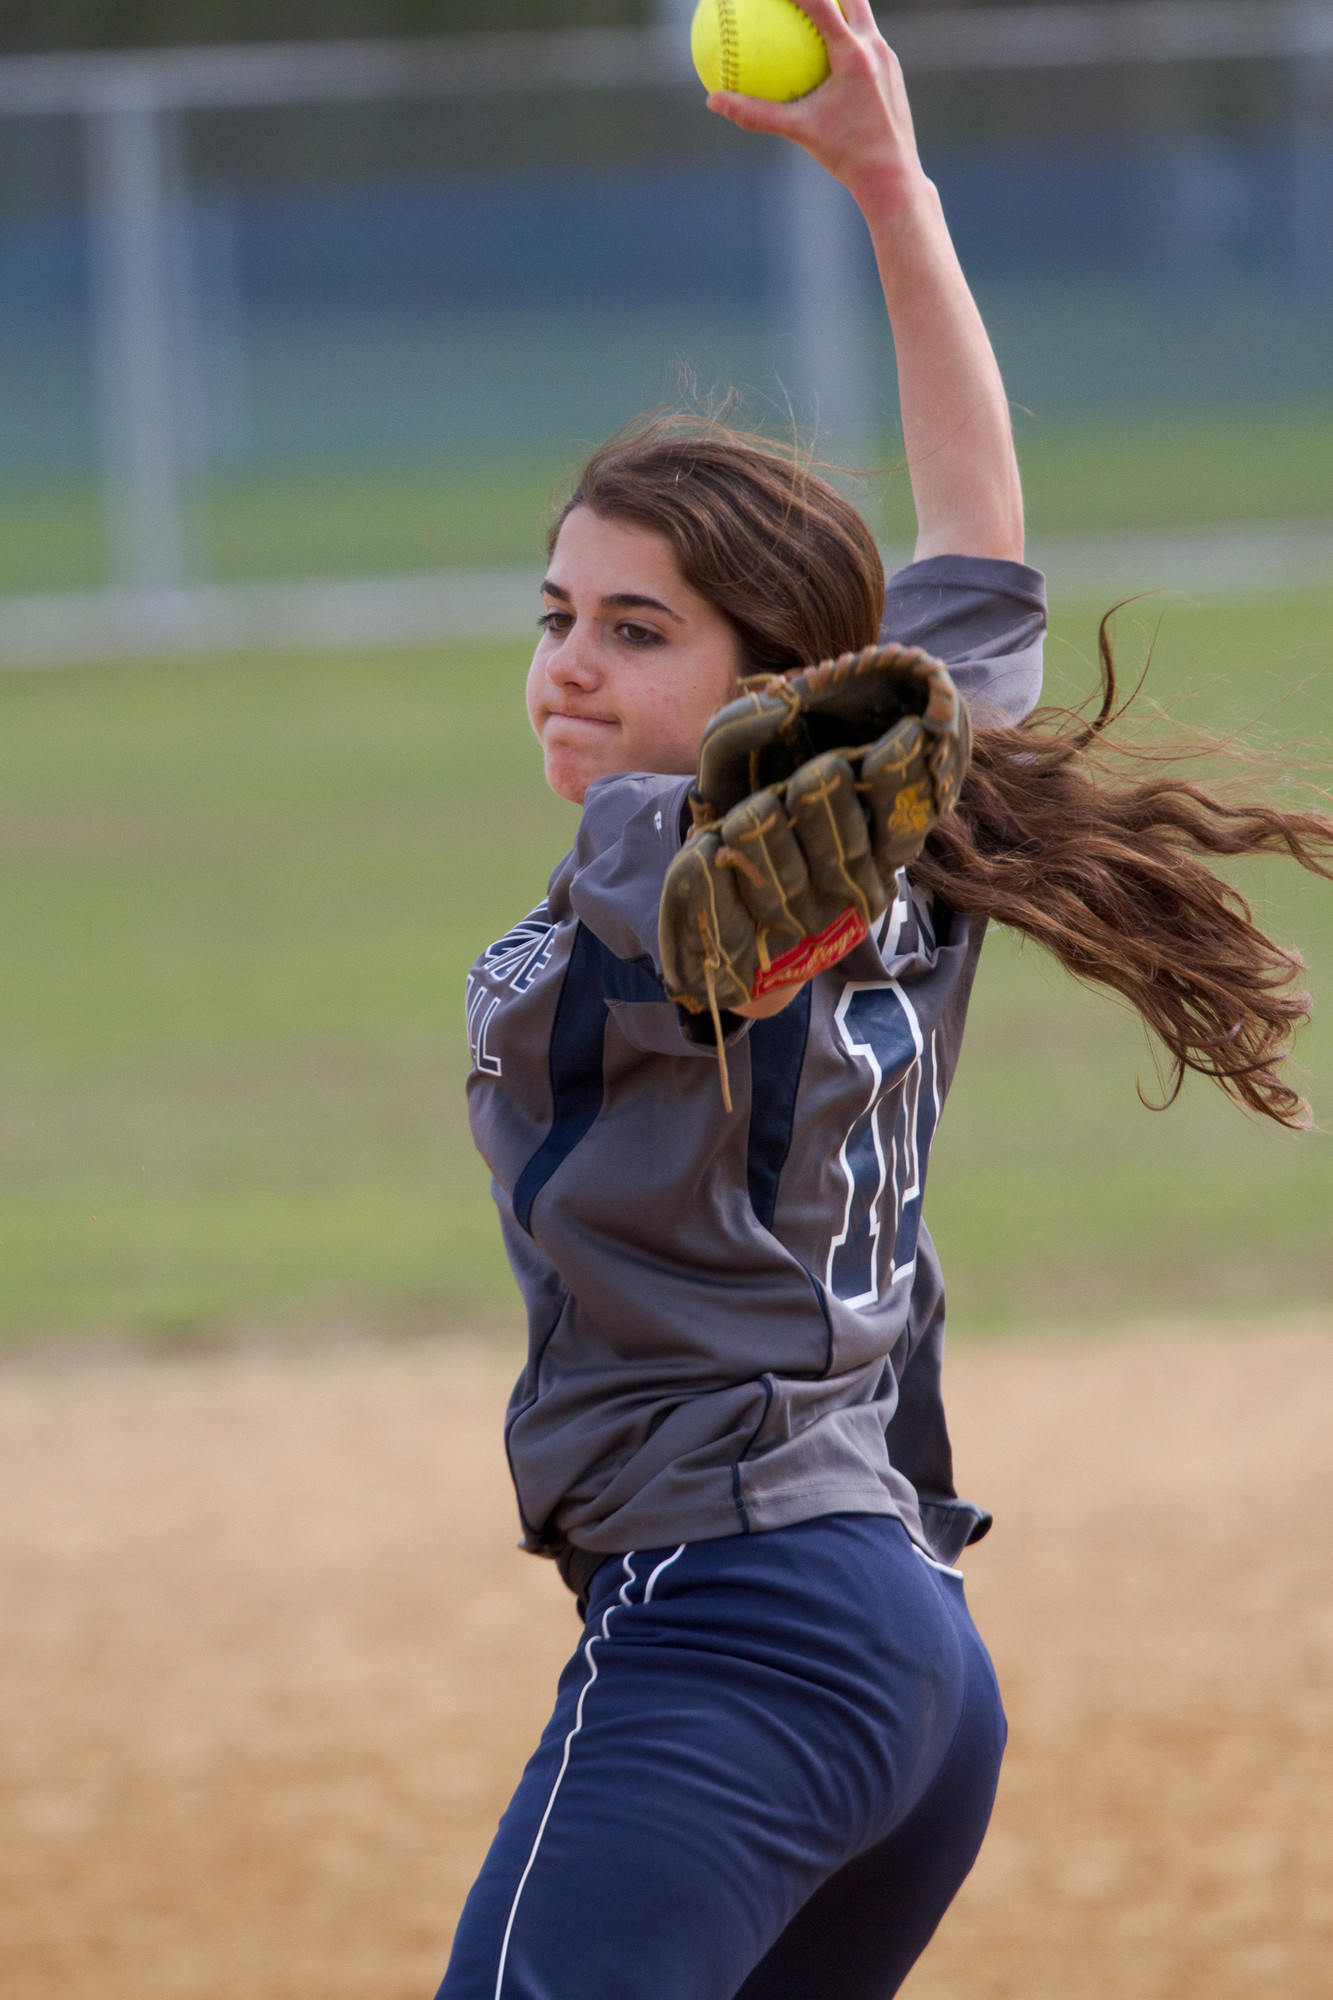 Ellen Derr got the job done in the pitching circle and at the plate in Oceanside's 2-1 win over Calhoun in a Nassau Class AA playoff game last Friday.